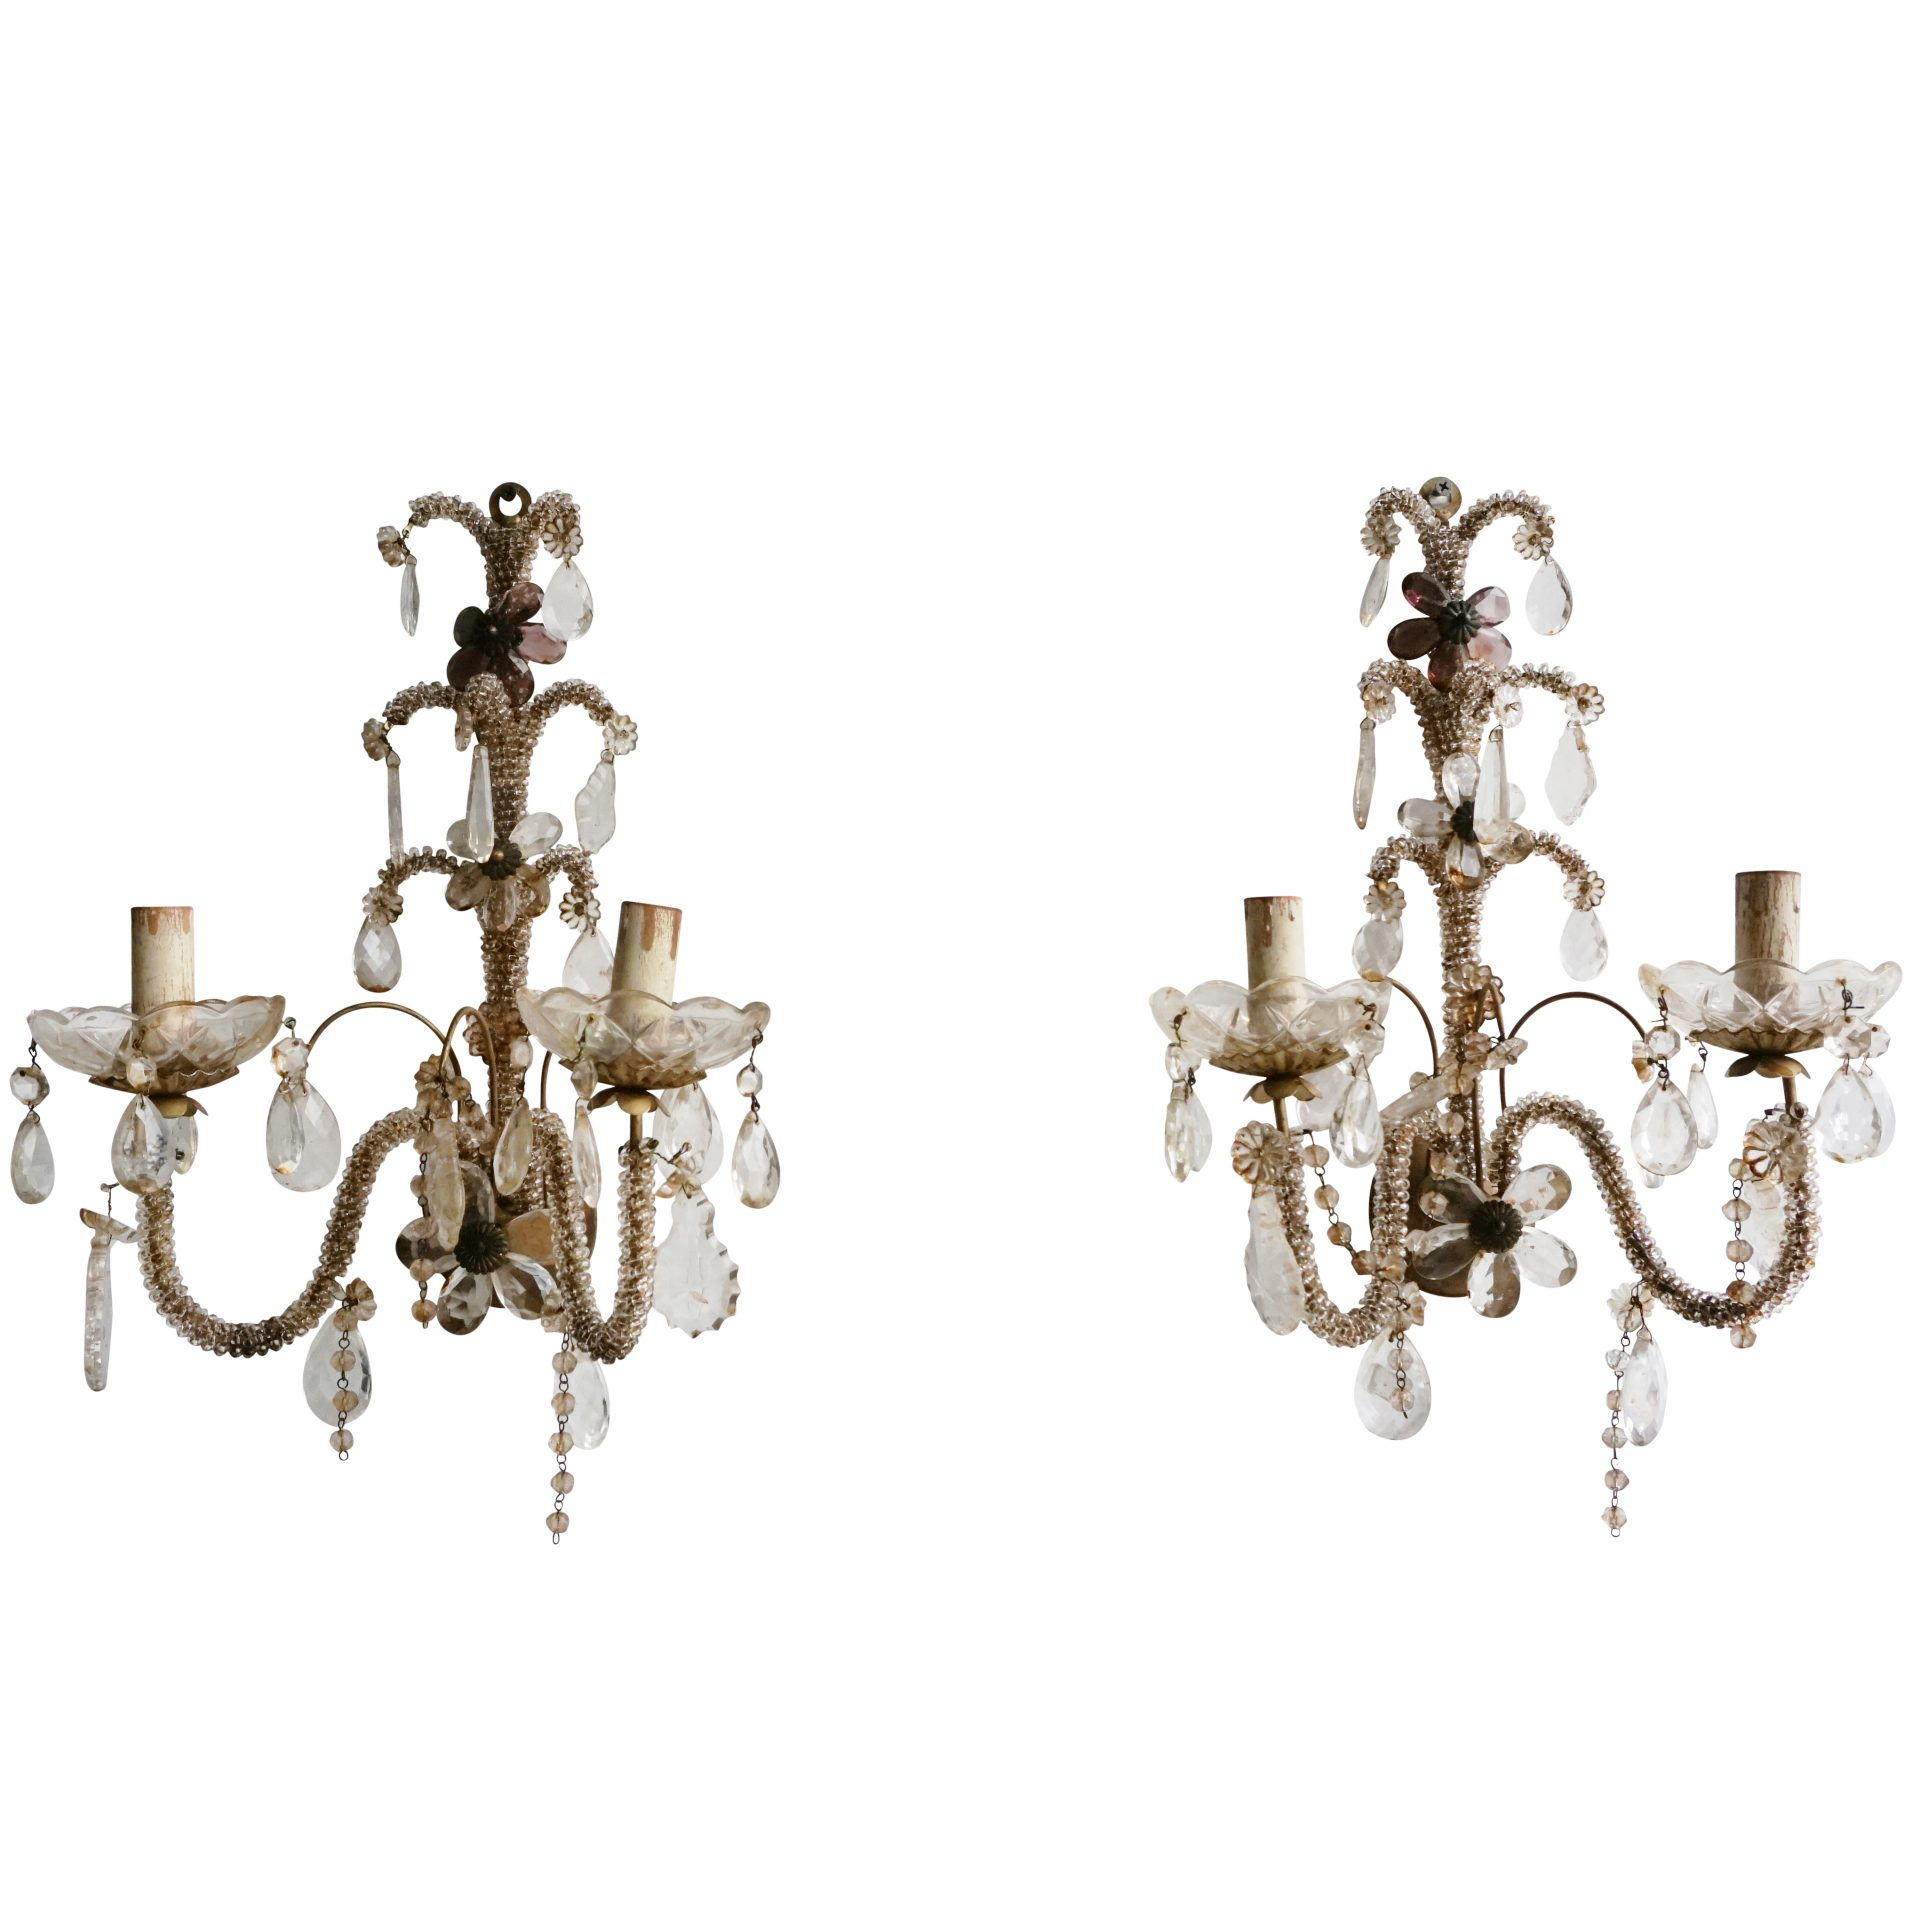 Pair of Ametiste Sconces